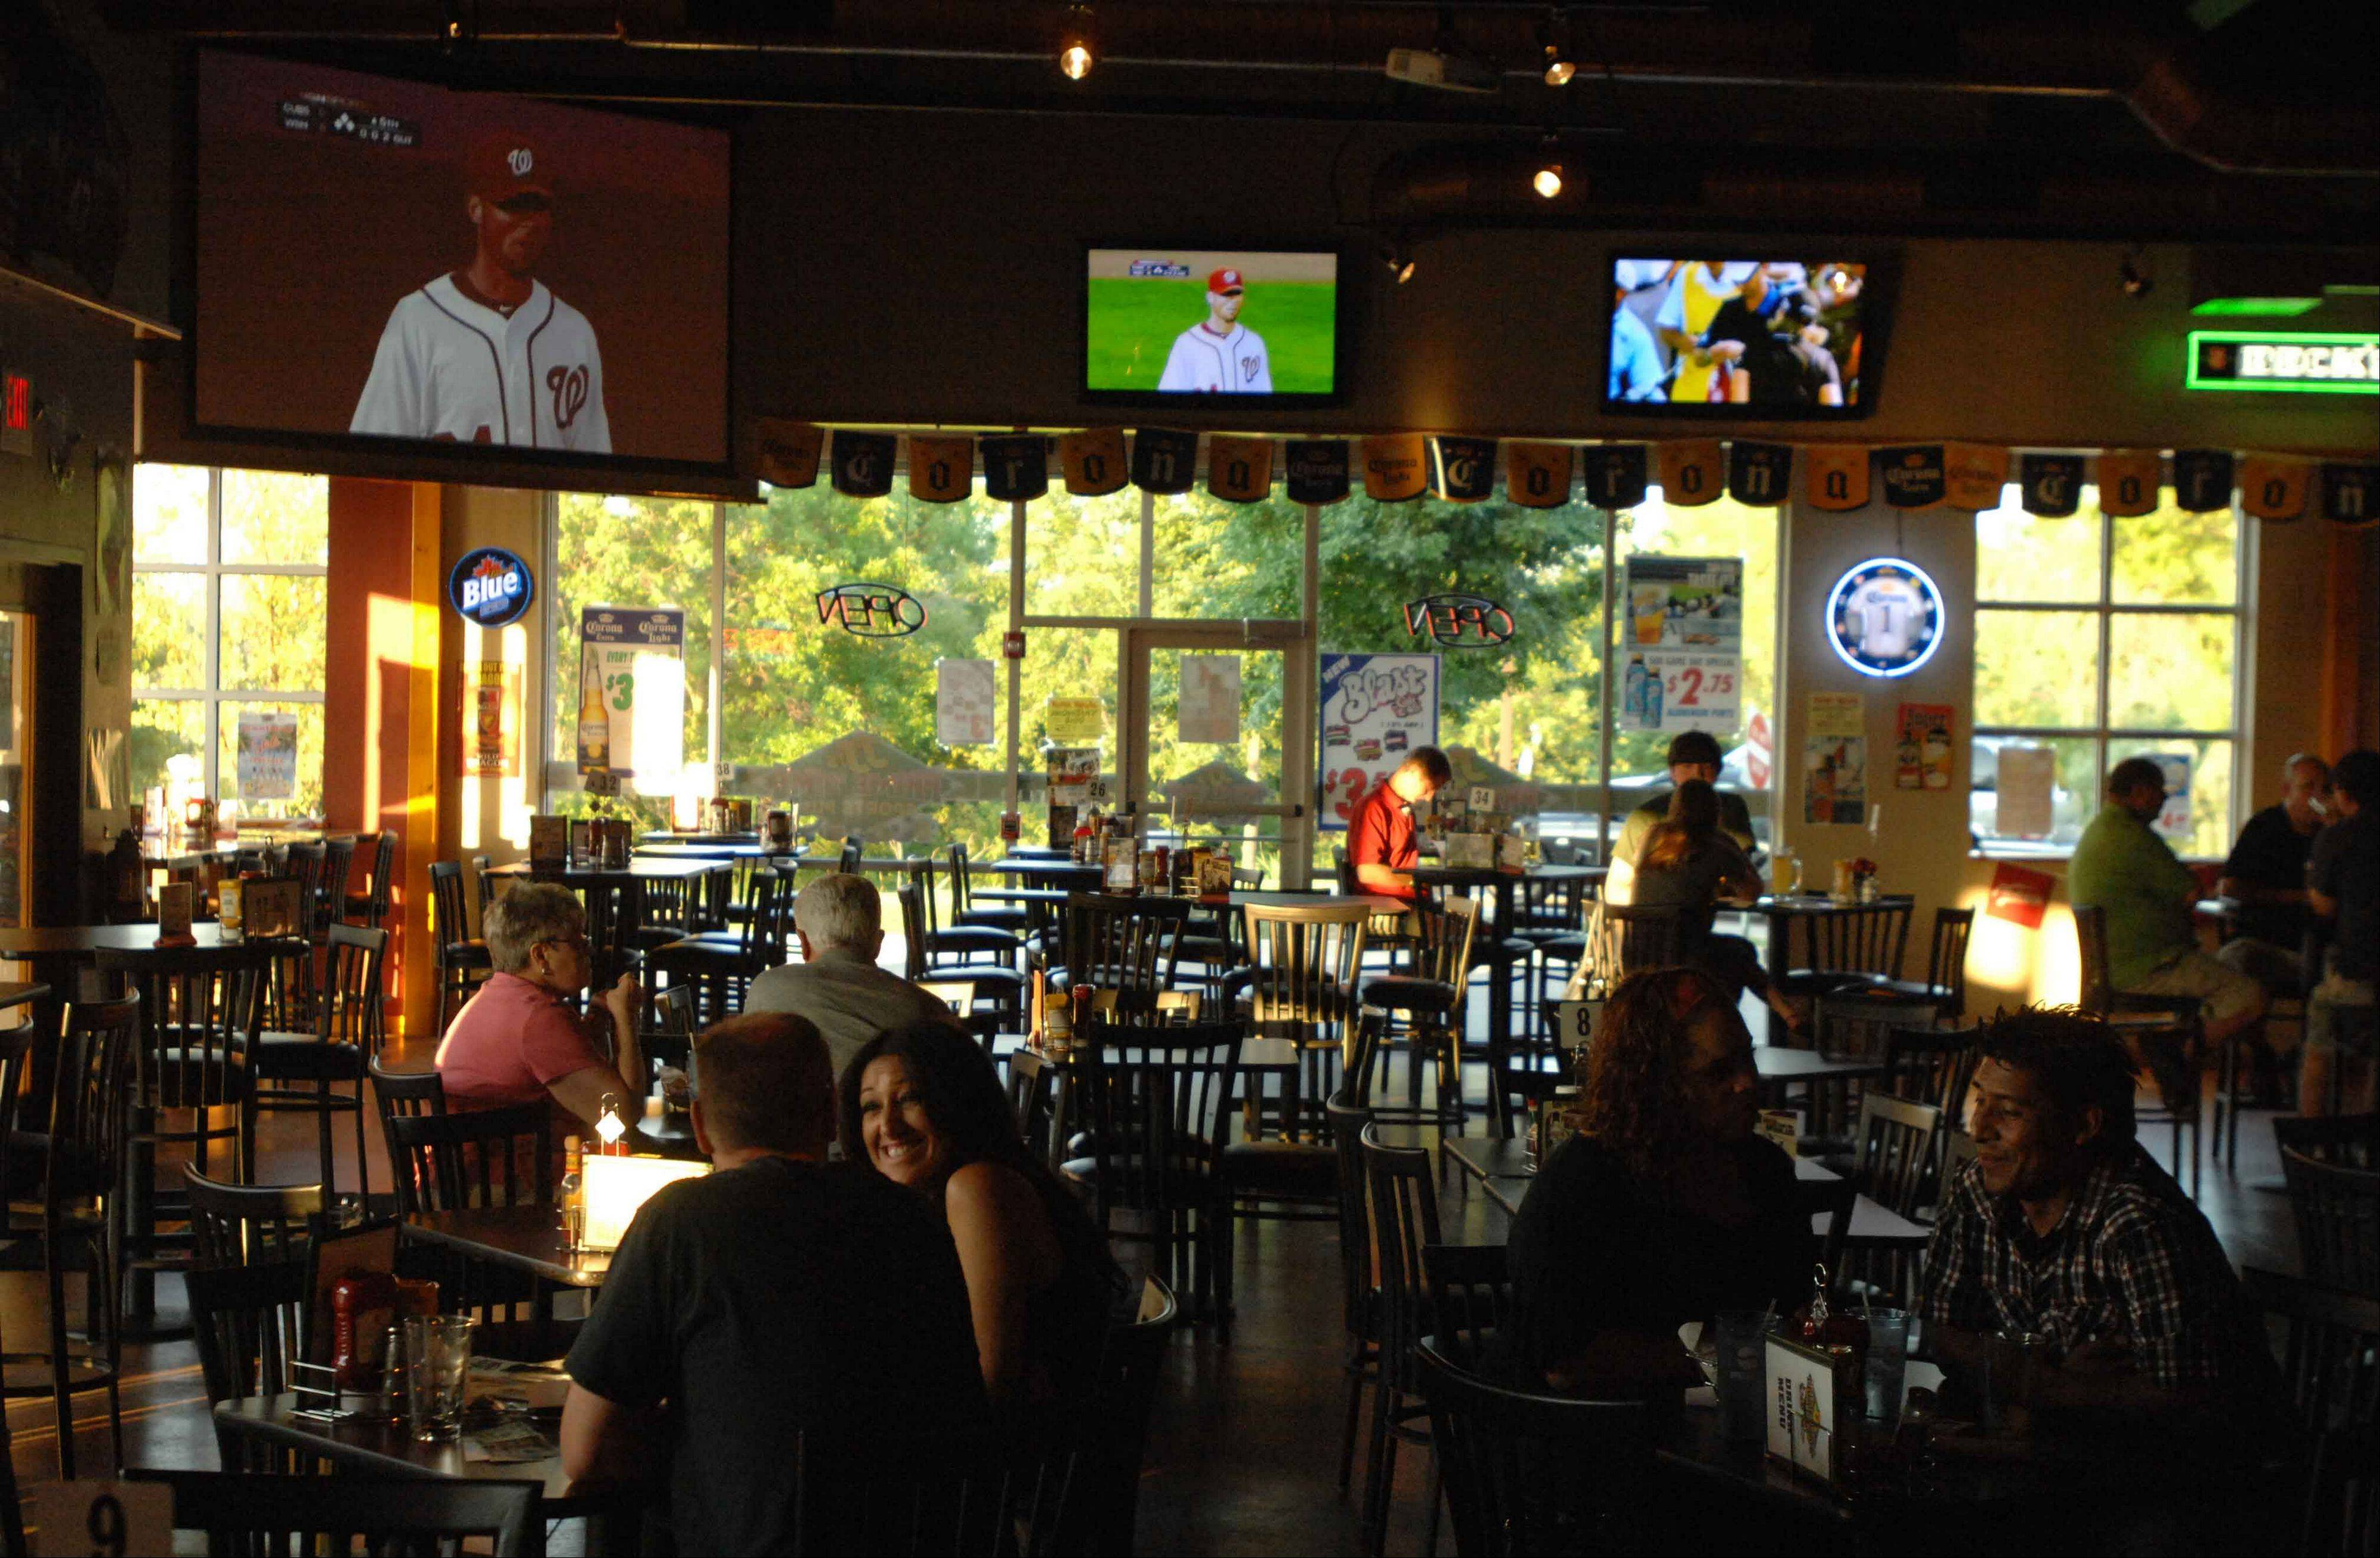 You can catch a game or just relax with friends over dinner and drinks at JJ's Prime Time in Aurora.